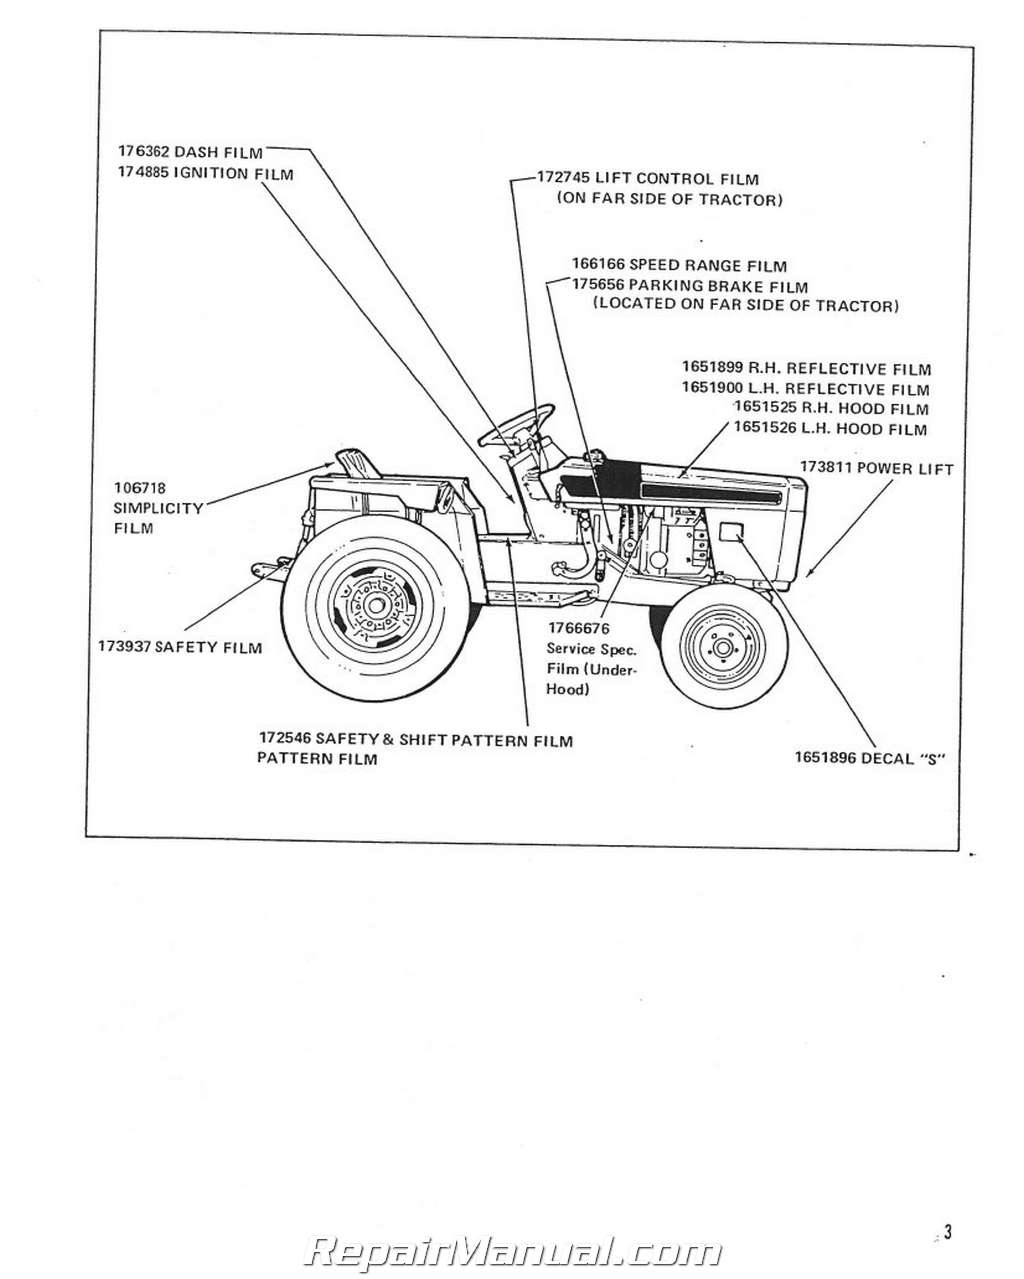 Power Max Wiring Diagram Page 4 And Schematics Simplicity Schematic 2 Heating Spare Source 9020 Allis Chalmers 720 Lawn Garden Rh Repairmanual Com Basic Mower